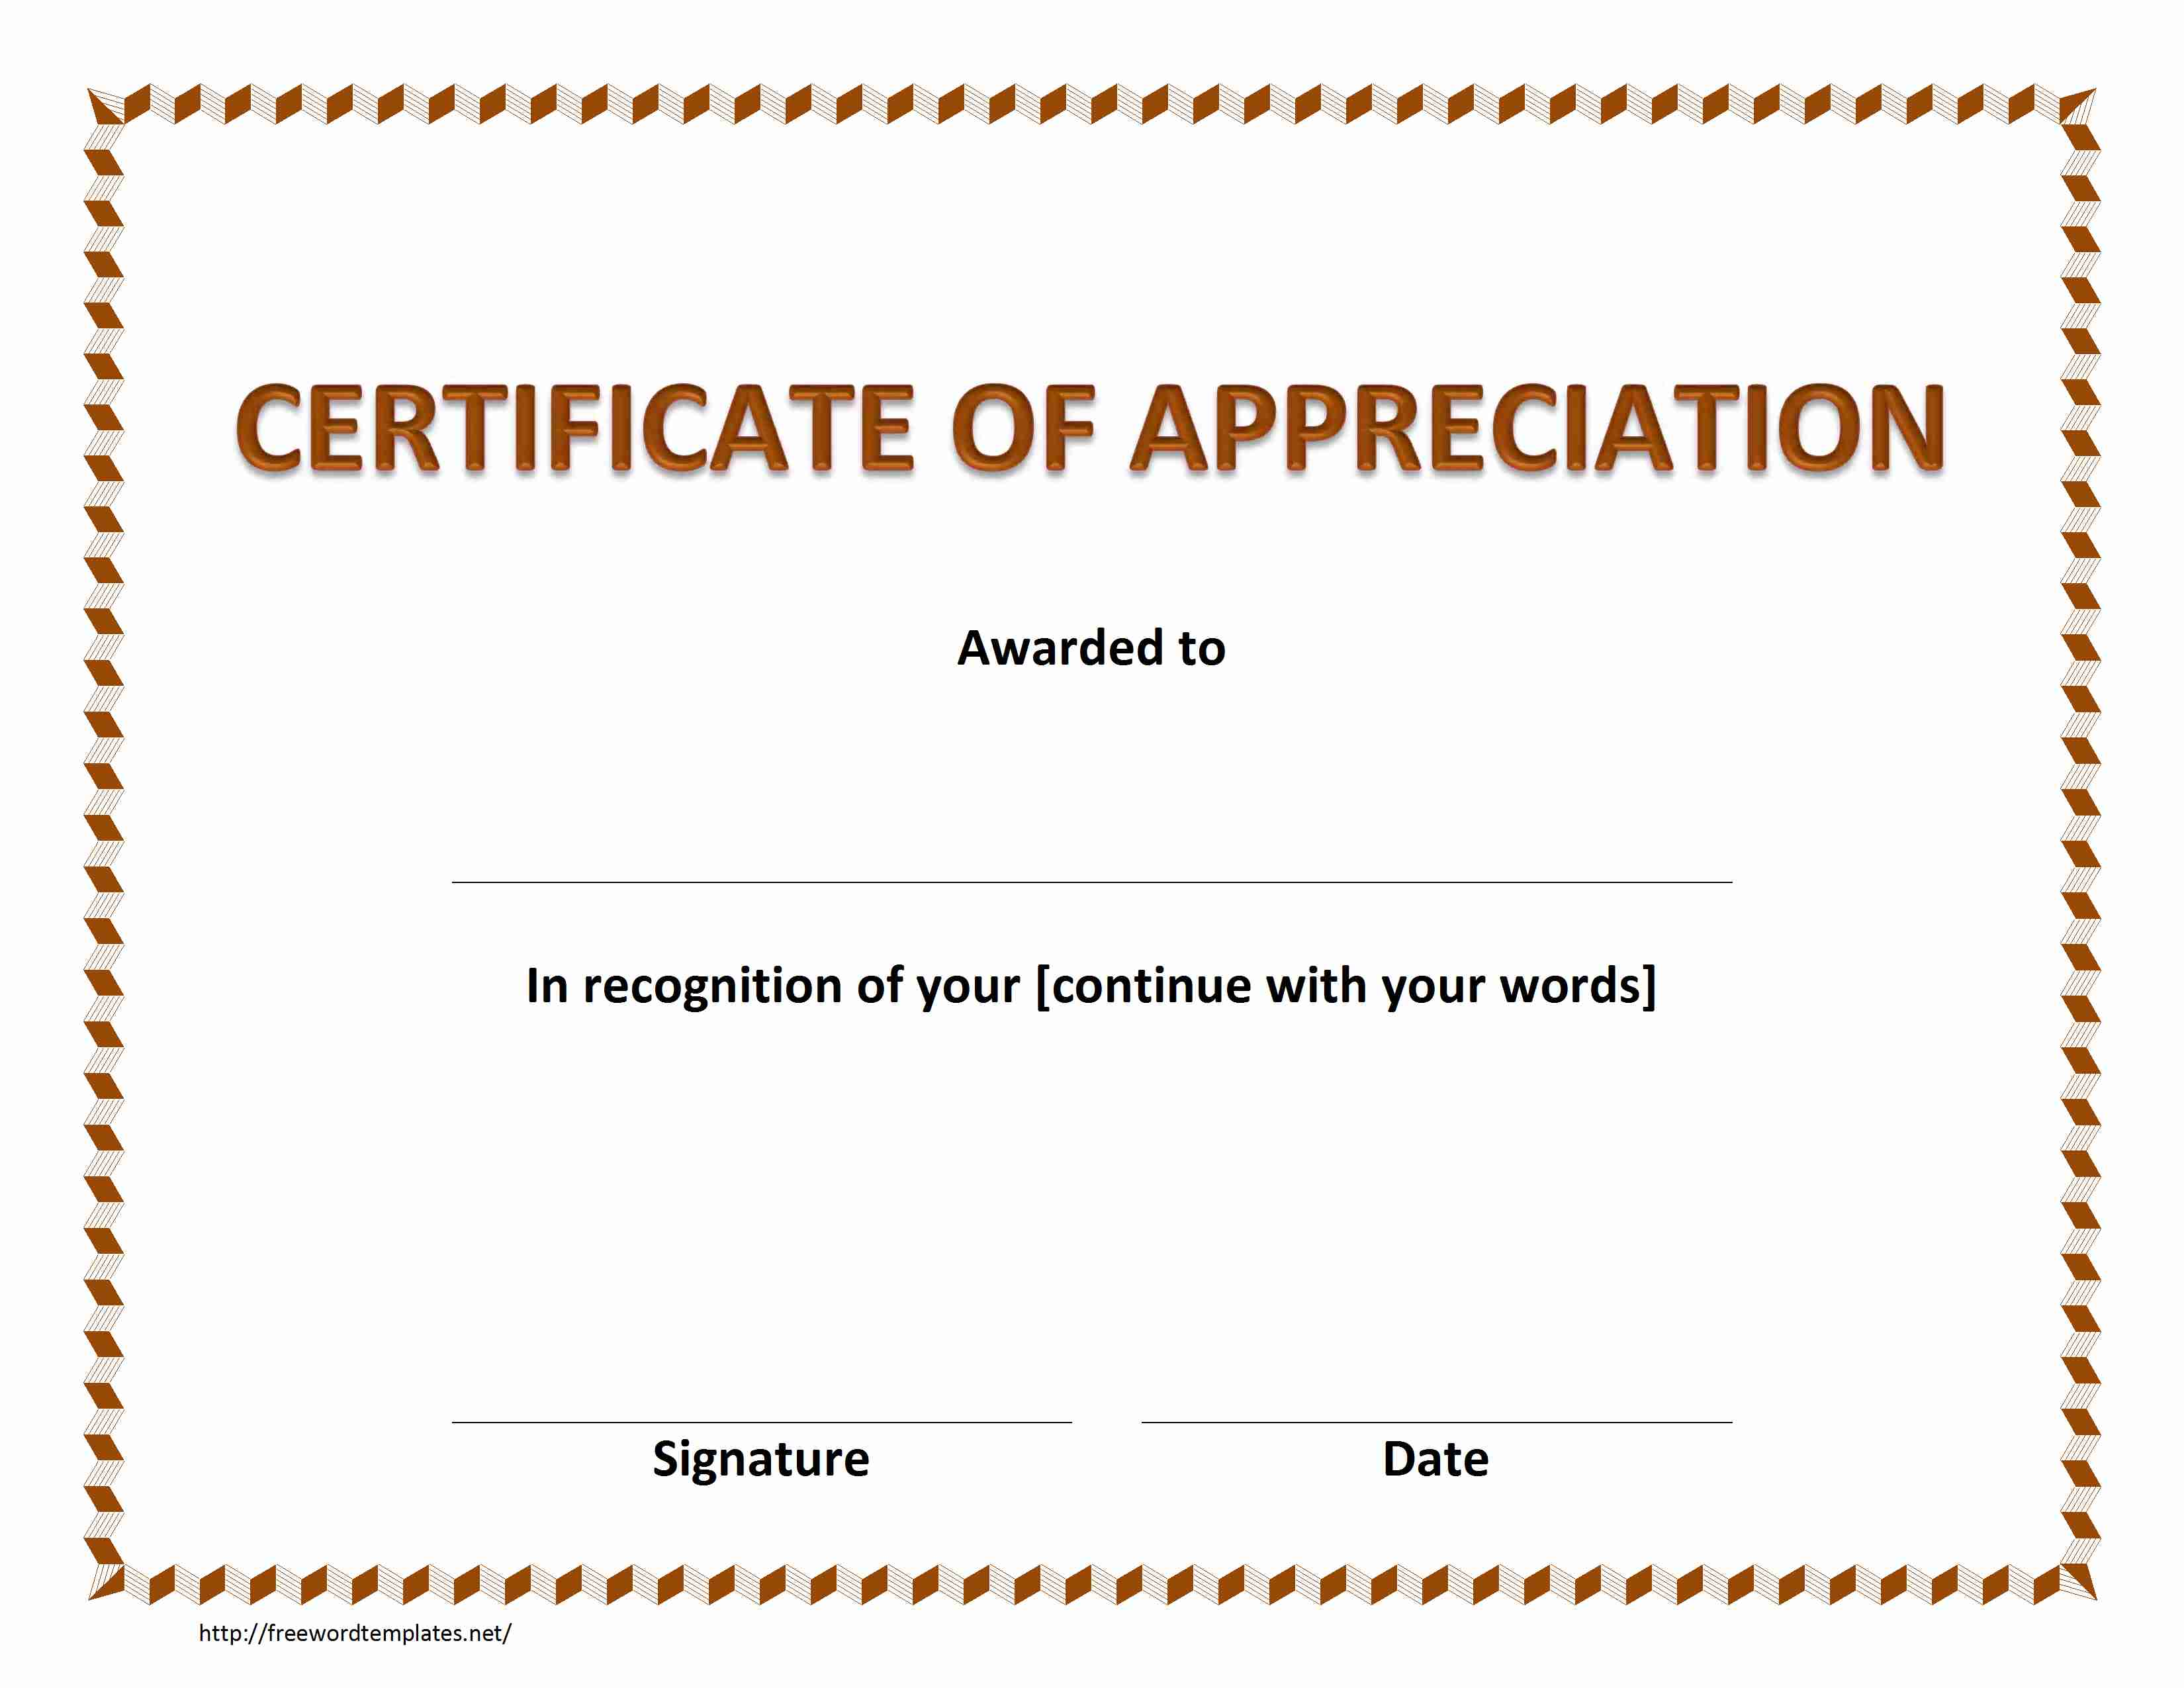 certificate of appreciation template word 2010